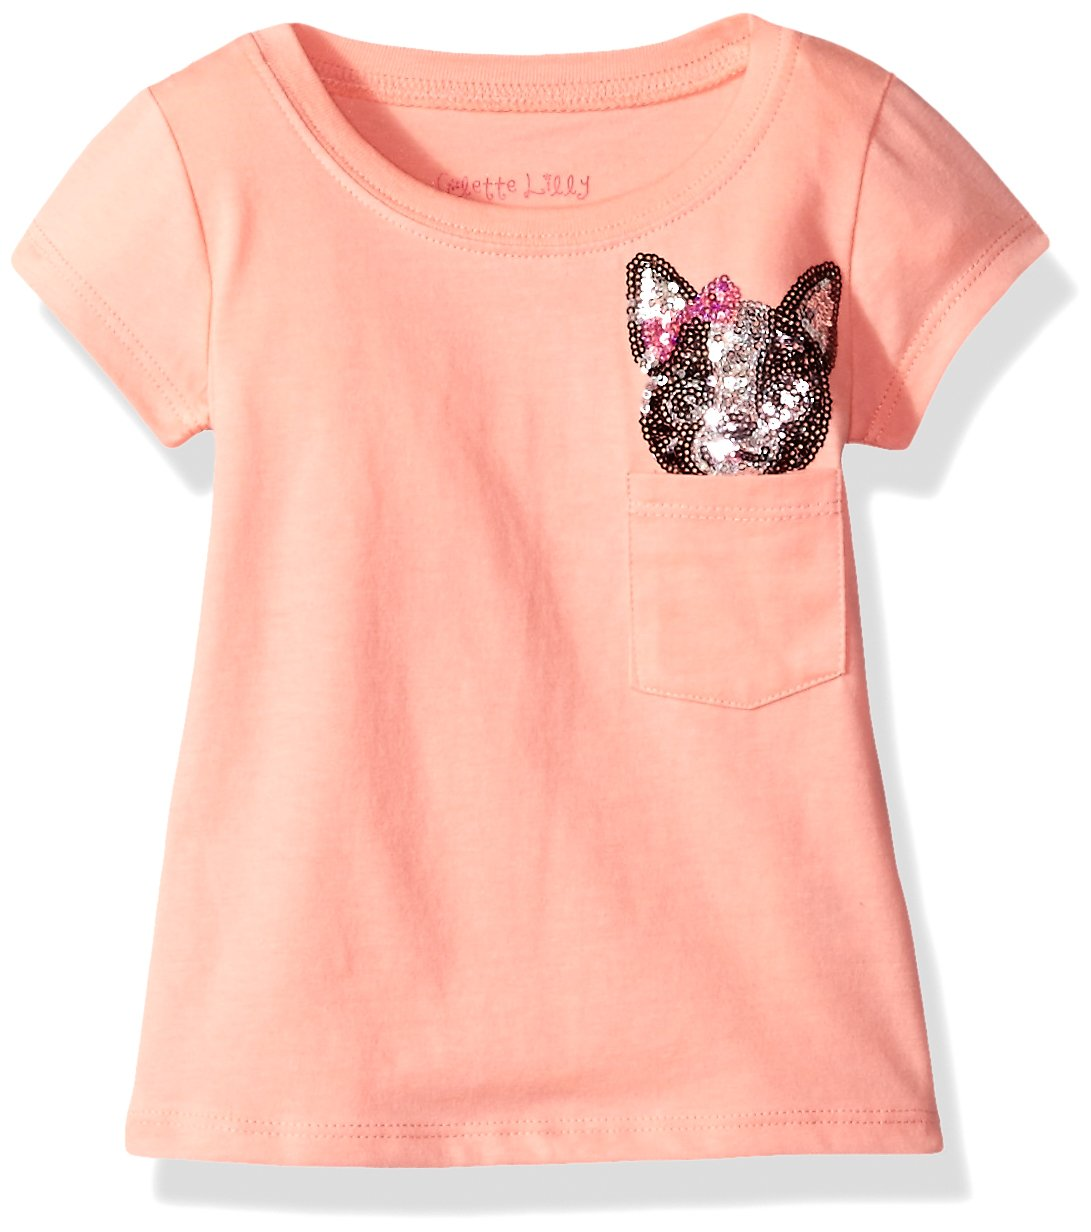 Colette Lilly Little Girls' Short Sleee Sequin Tee, Coral Flower, 5/6 by Colette Lilly